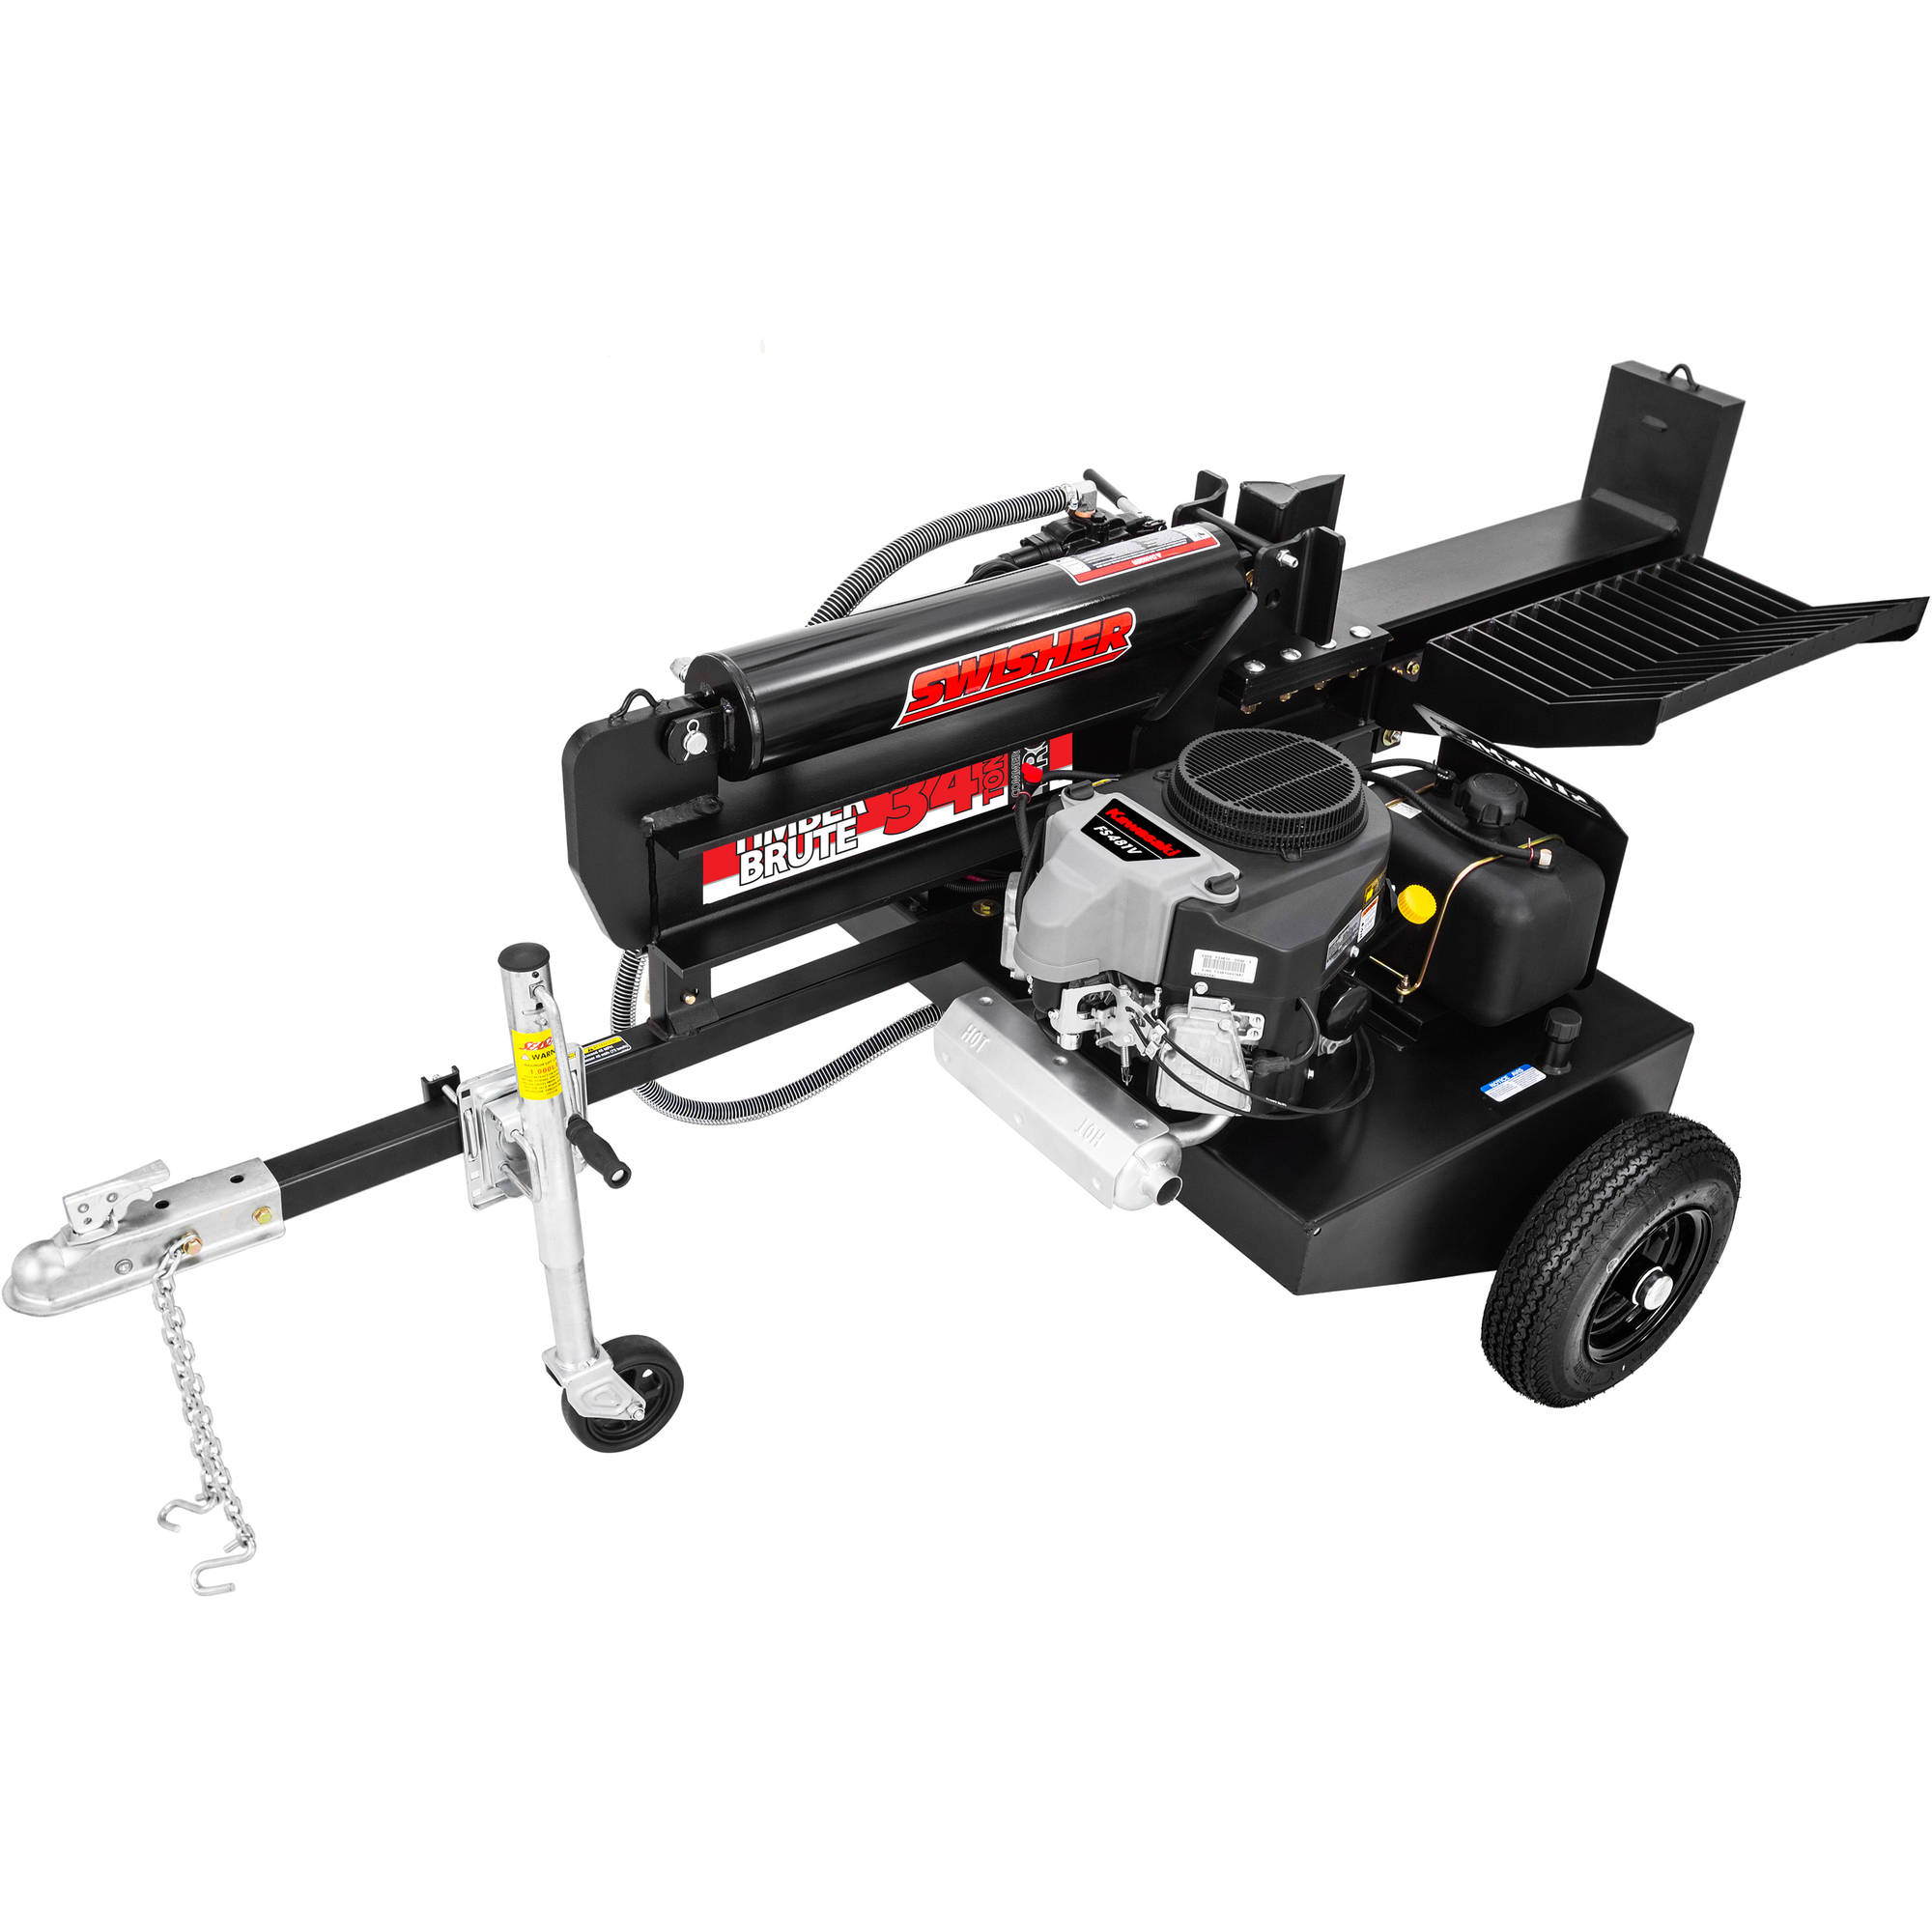 Swisher 14.5 HP 34-Ton Timber Brute Commercial Pro Log Splitter by Swisher Acquisition, Inc